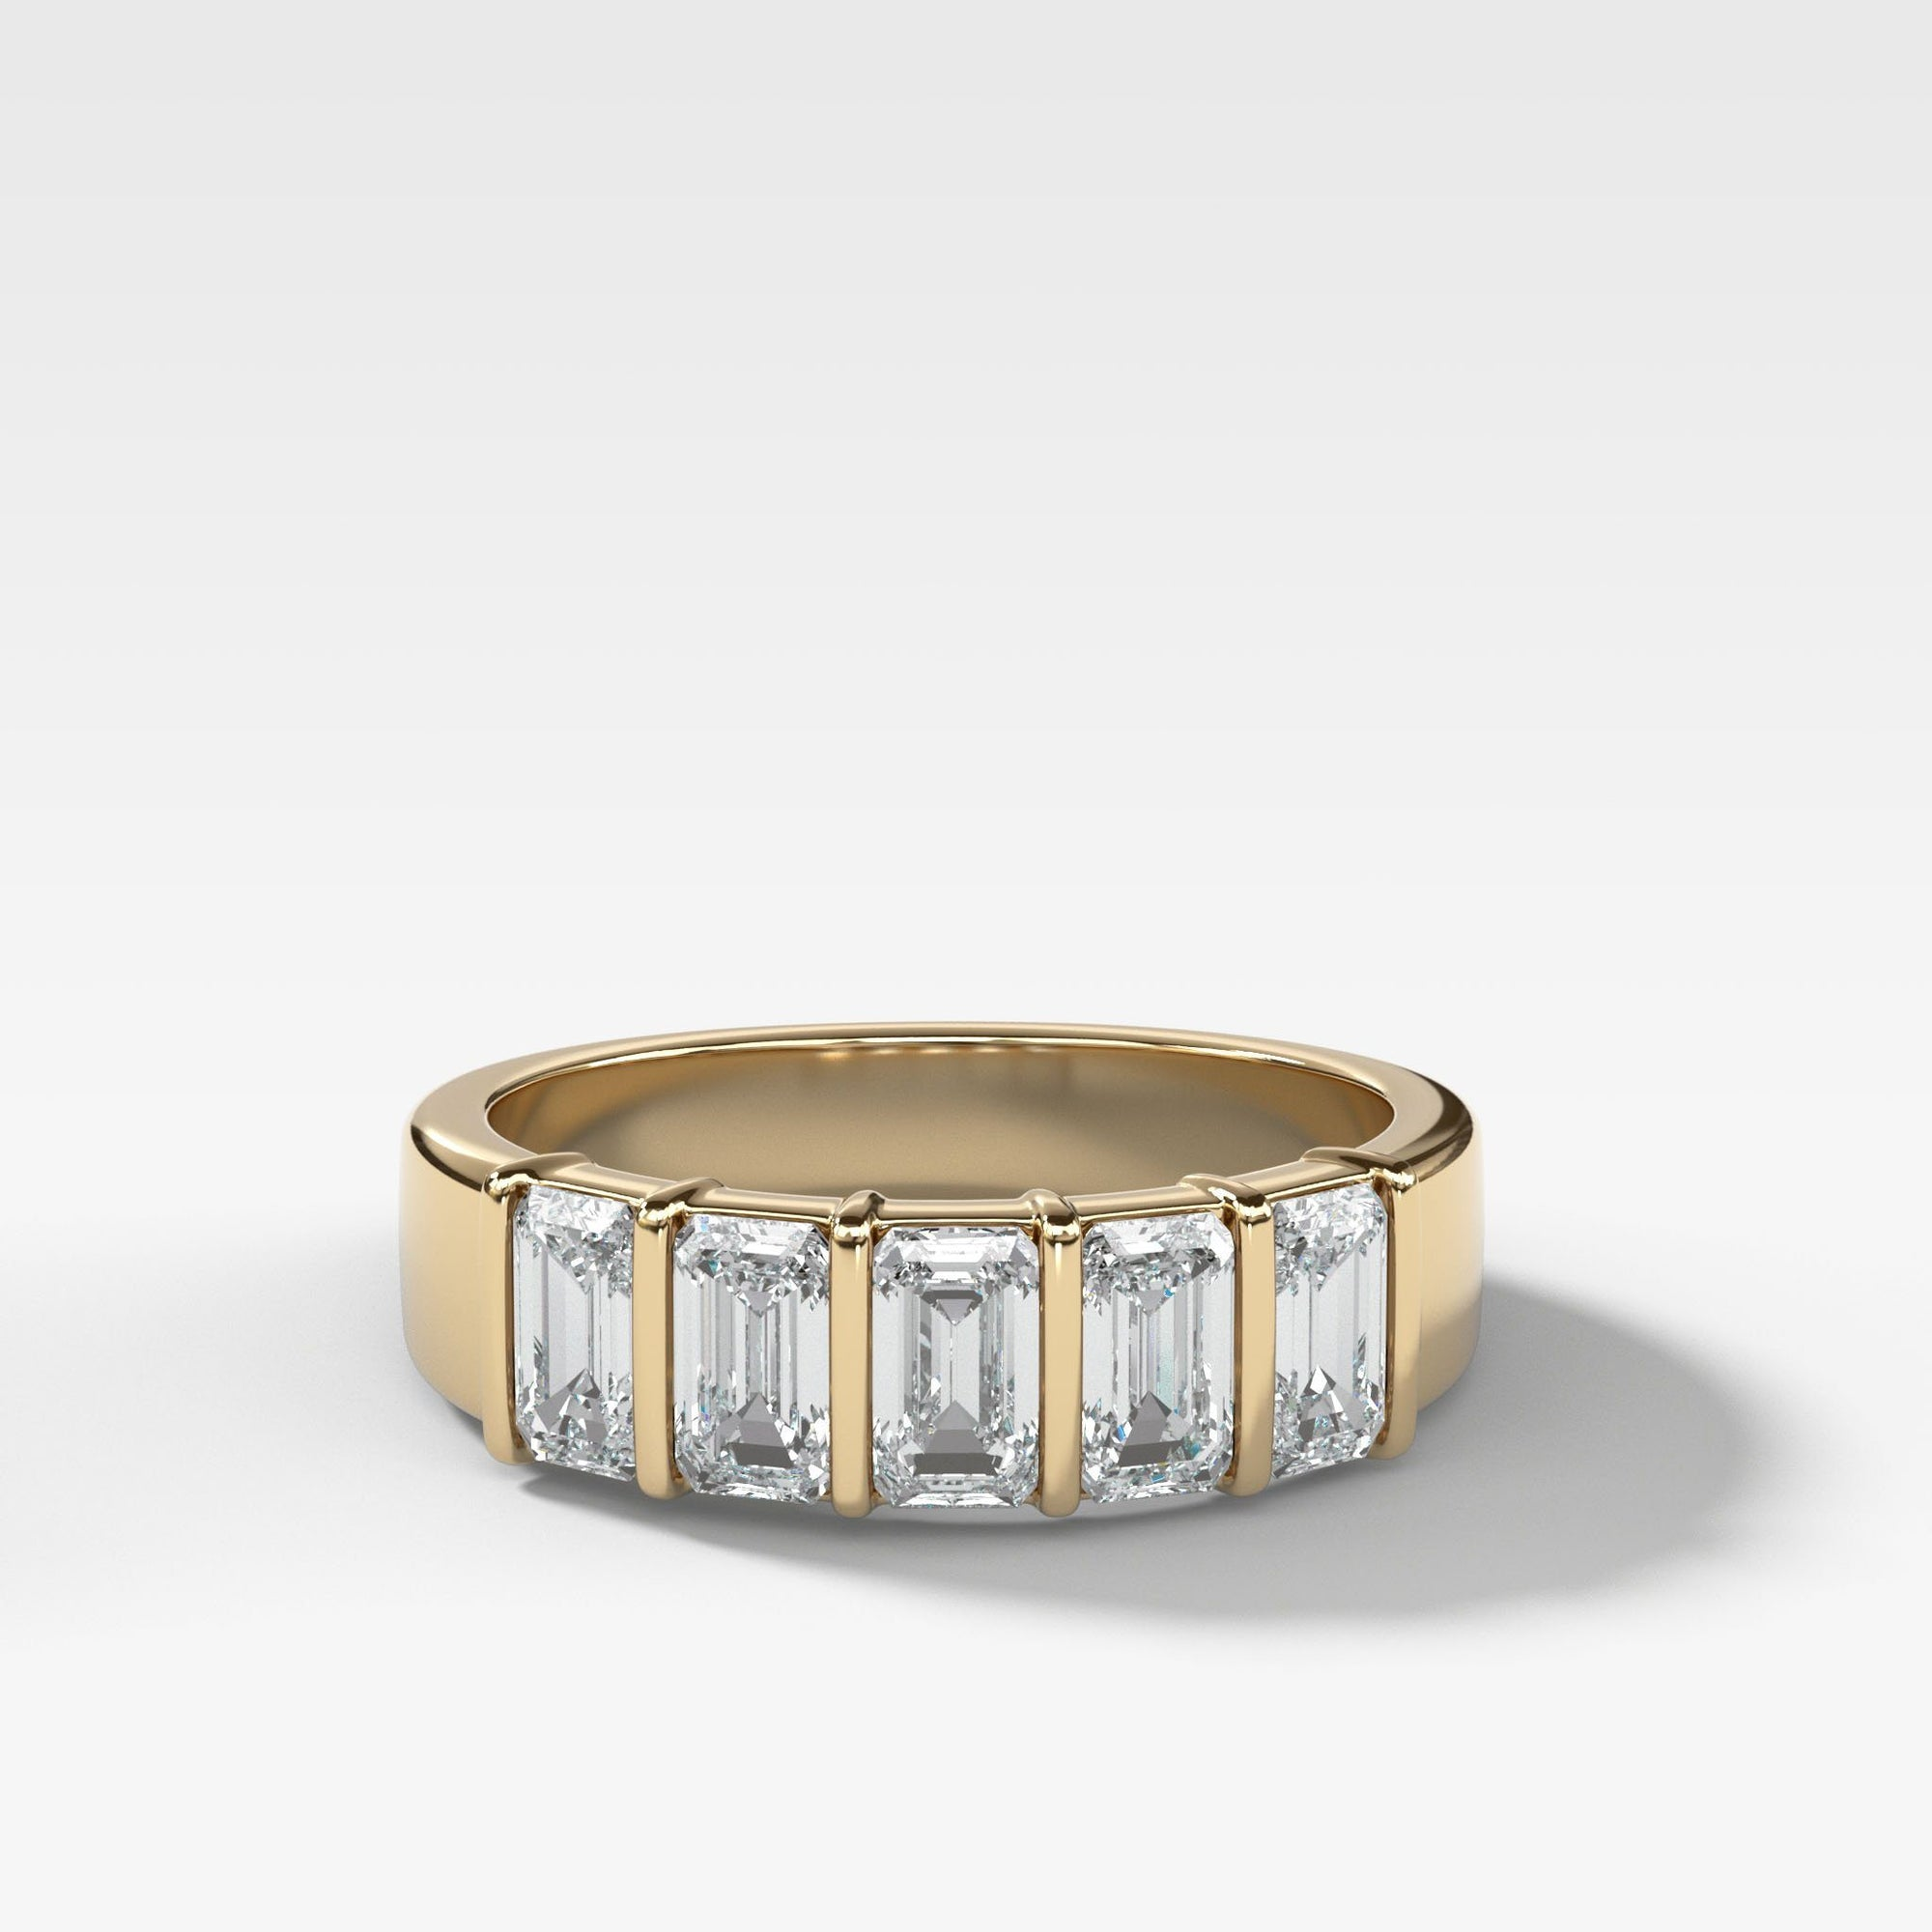 Five Stone Emerald Cut Diamond Ring in Yellow Gold by Good Stone